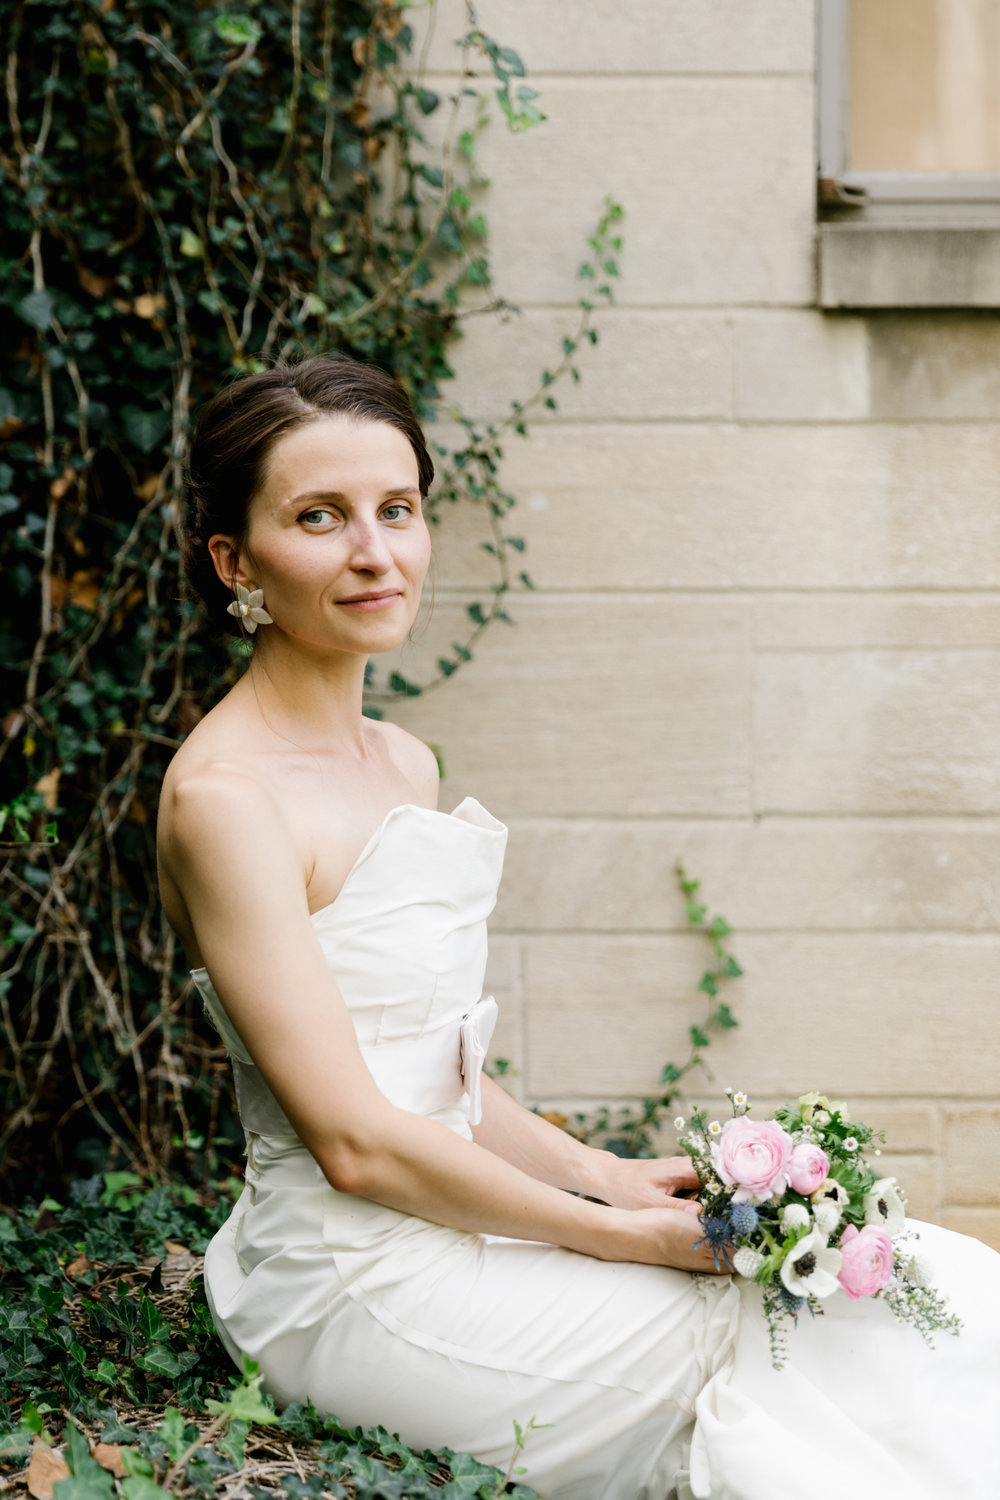 A portrait of Anna on her wedding day at Indiana University in Bloomington, Indiana.